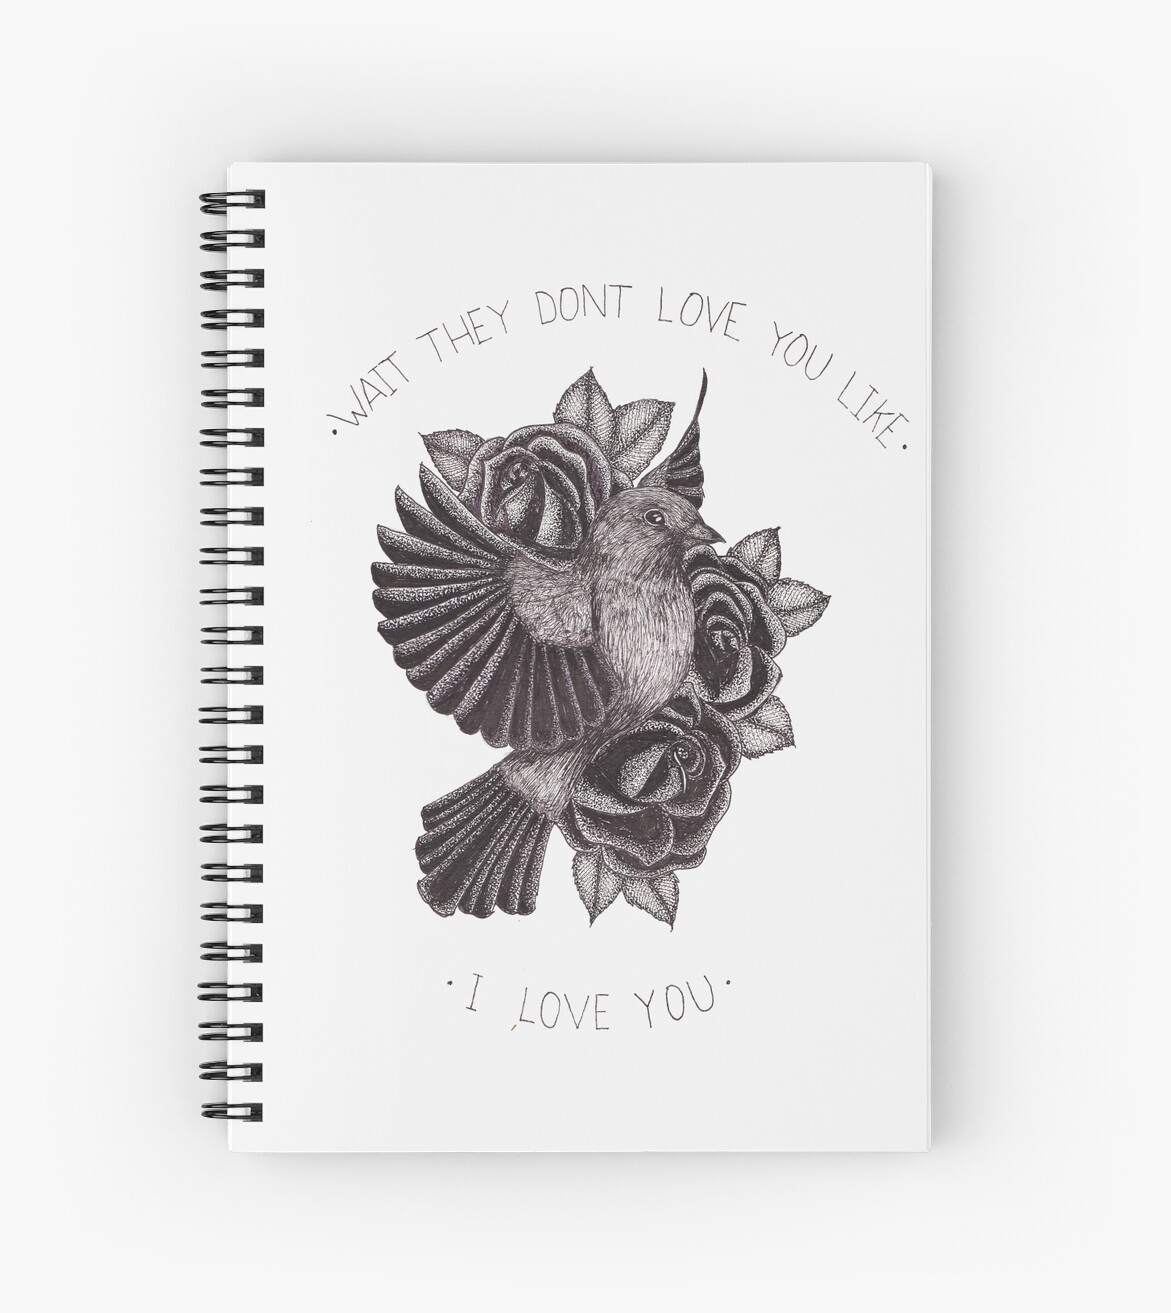 They Don't Love You by Bethany Dixon